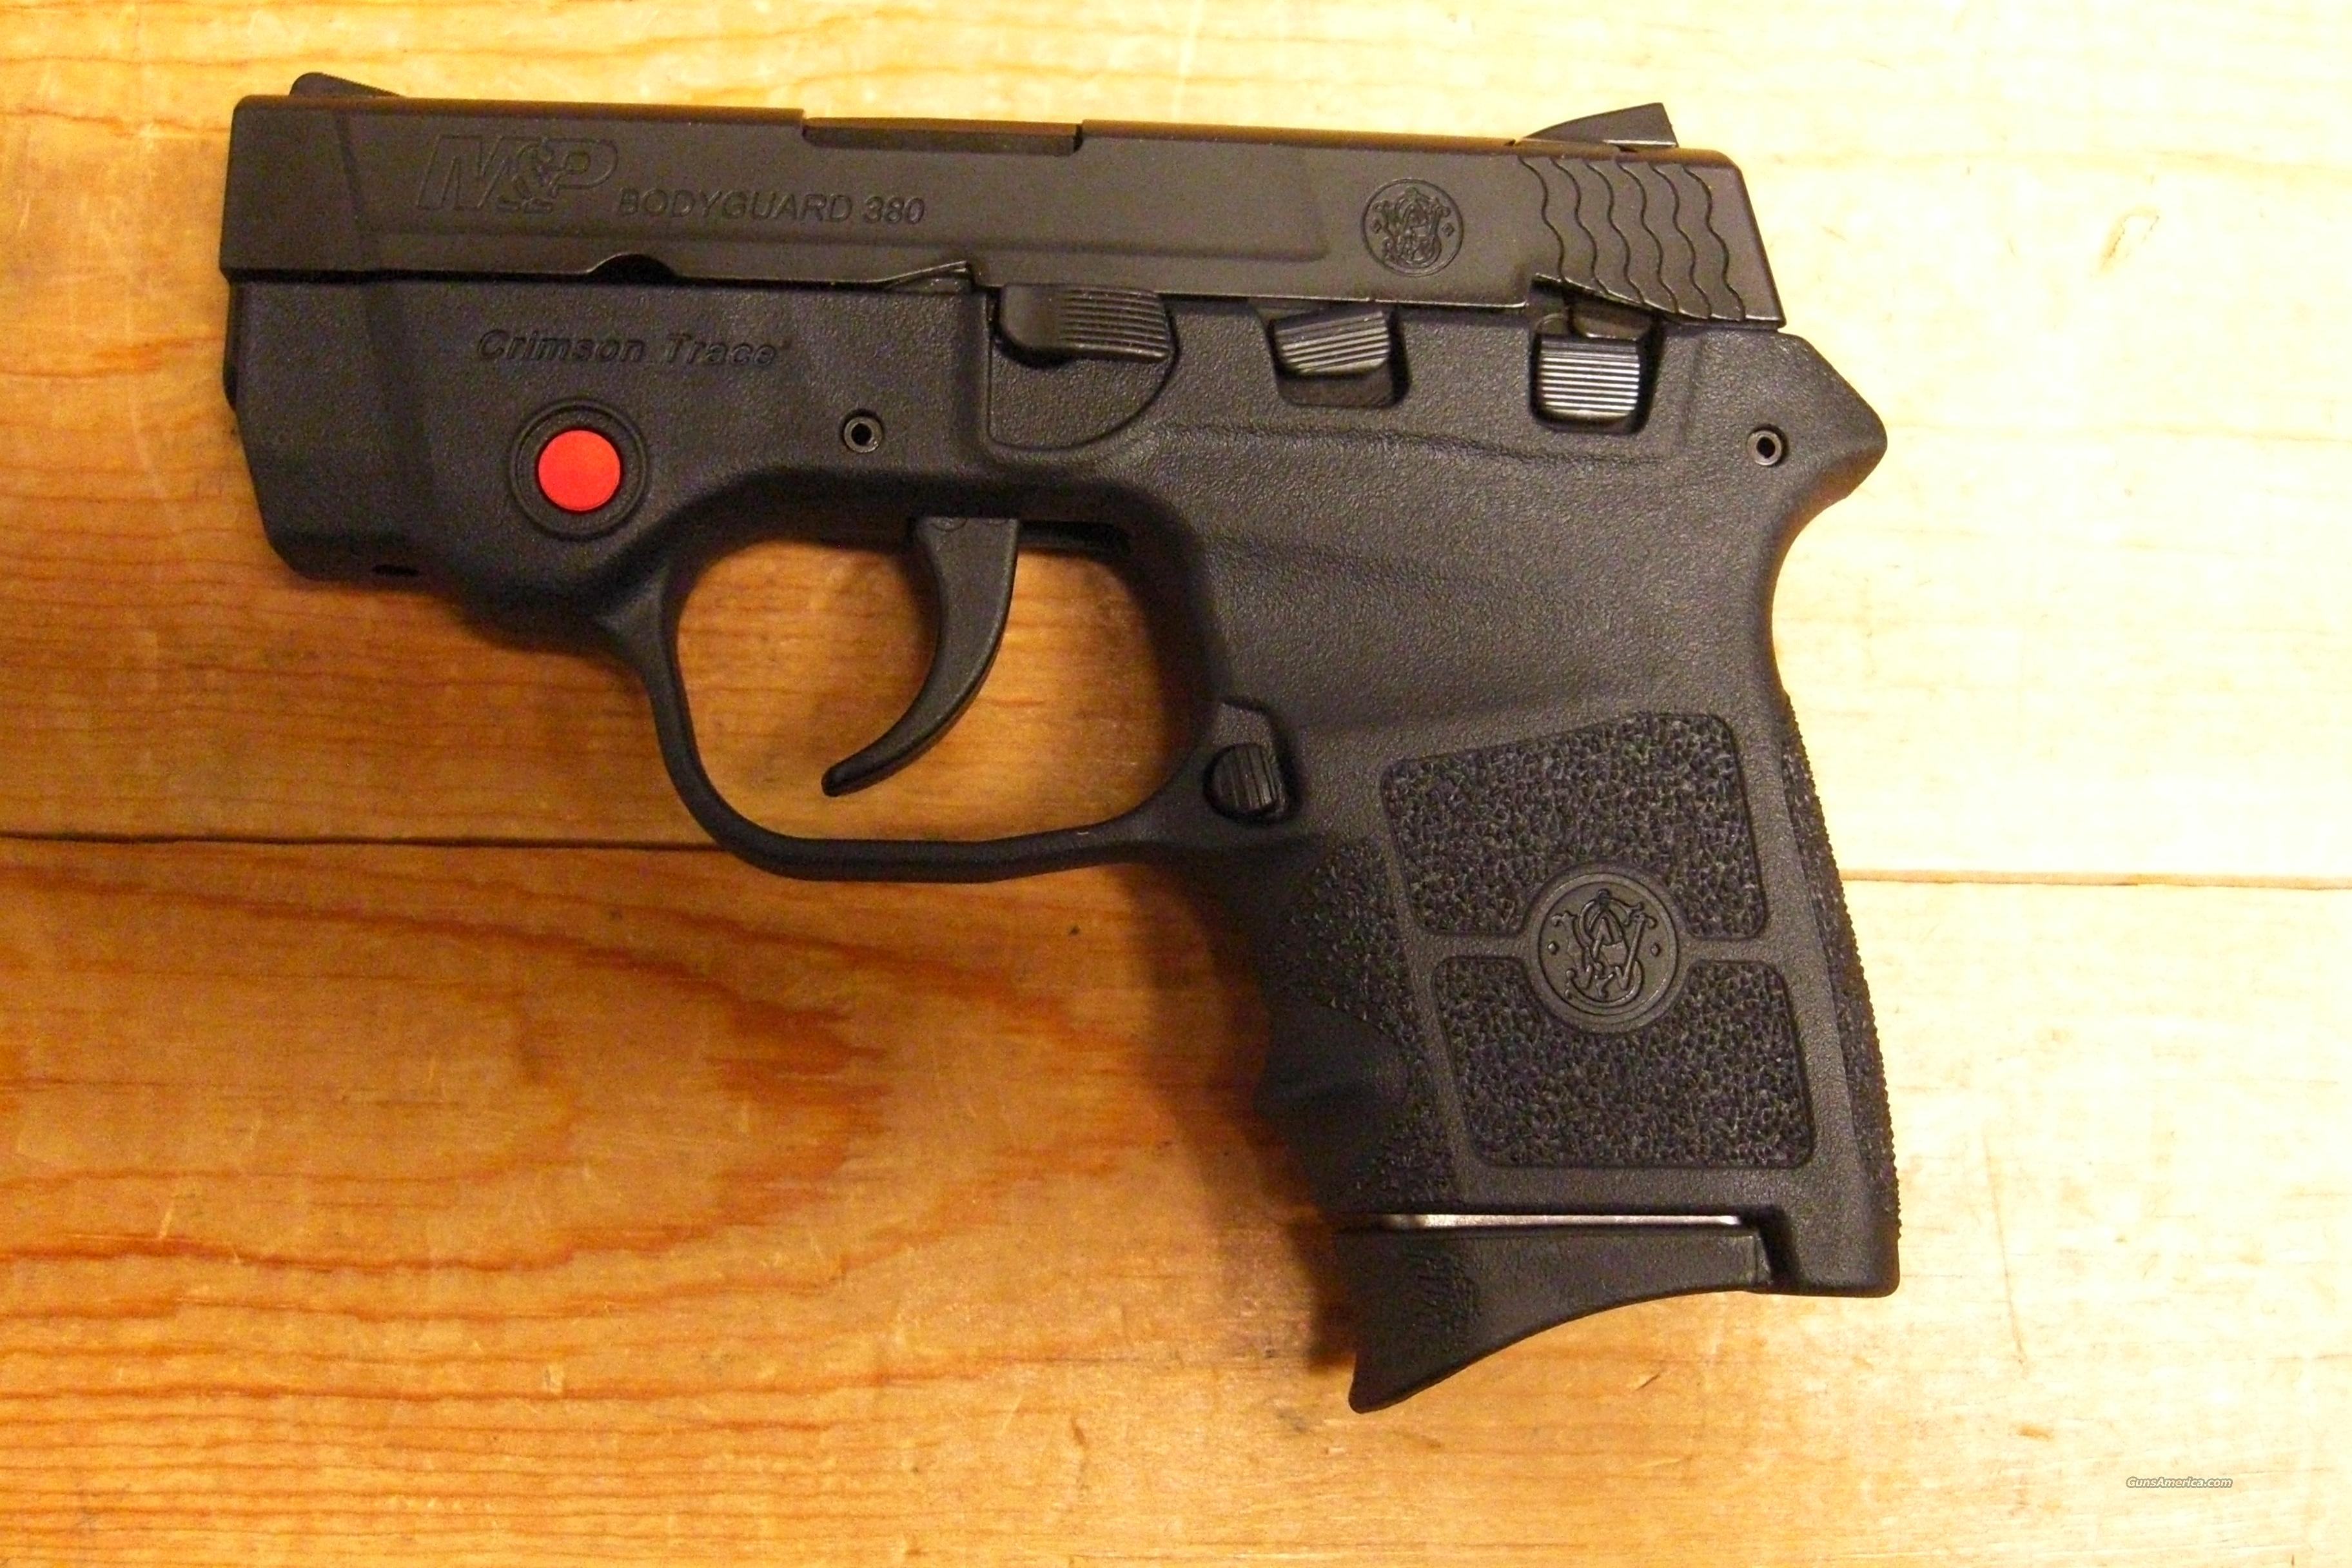 BG380 Black with Crimson Trace red dot laser  Guns > Pistols > Smith & Wesson Pistols - Autos > Polymer Frame